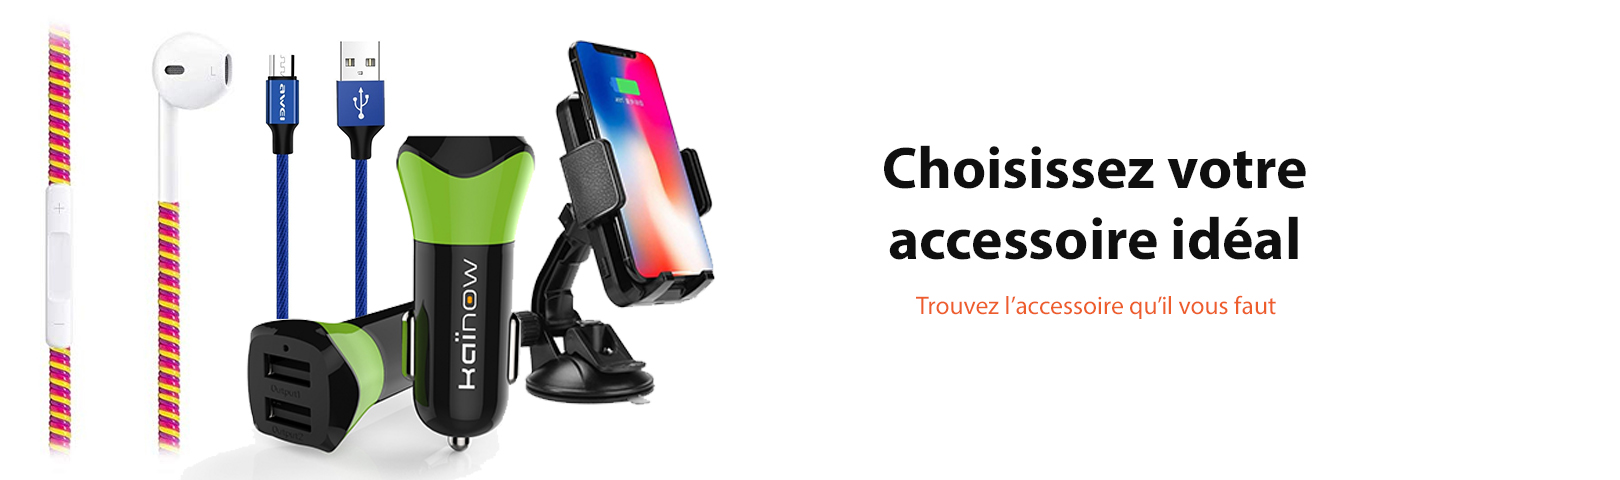 accessoire telephone iphone samsung